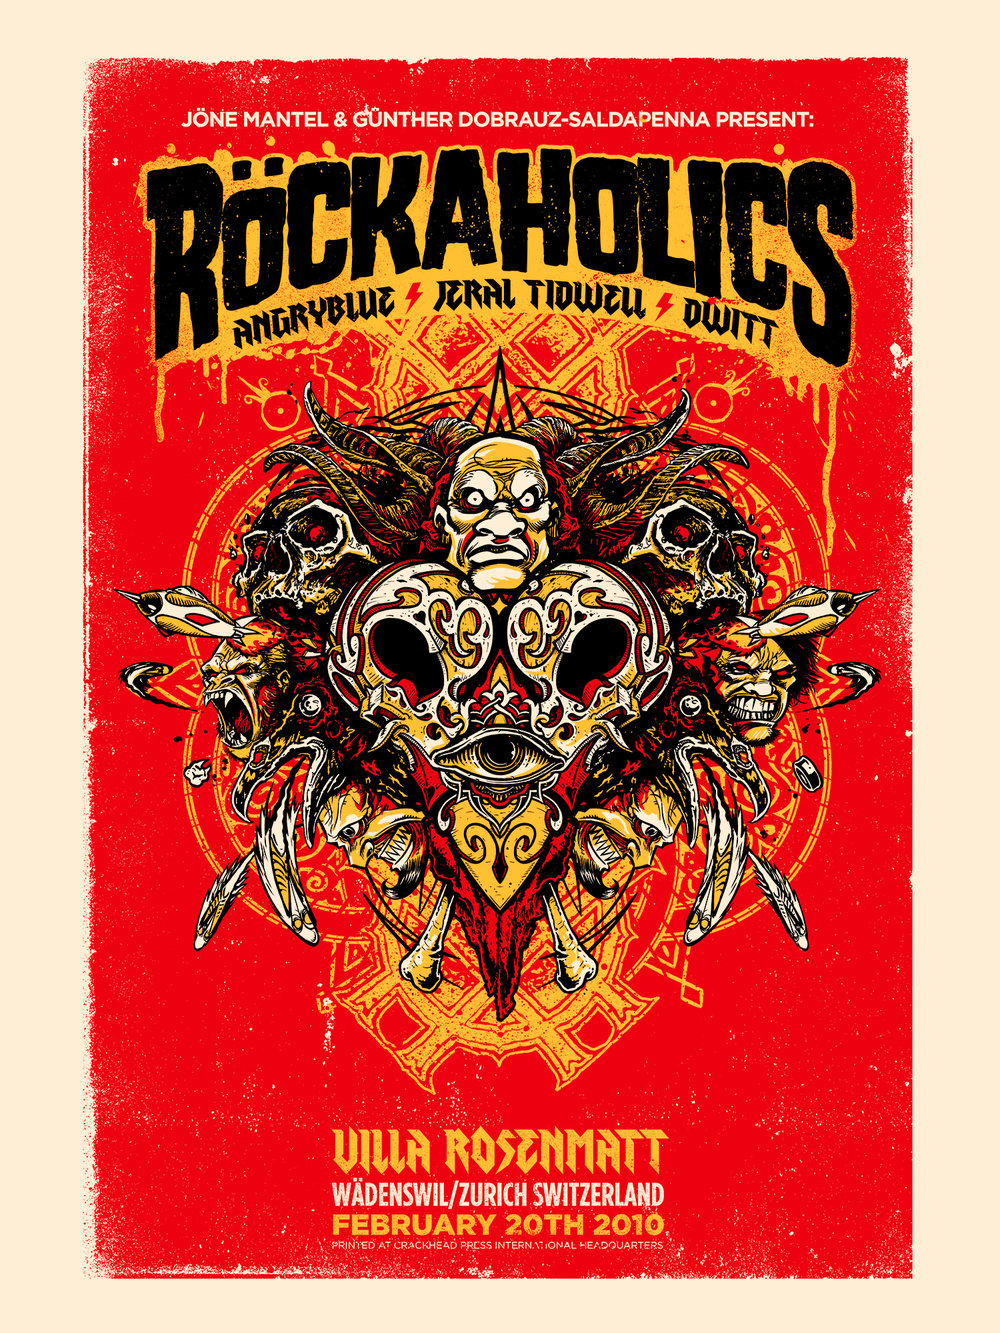 Rockaholics was a show in Zurich, Switzerland featuring the work of Angryblue, Jeral Tidwell and David Witt. We all flew over to represent and meet some new friends.